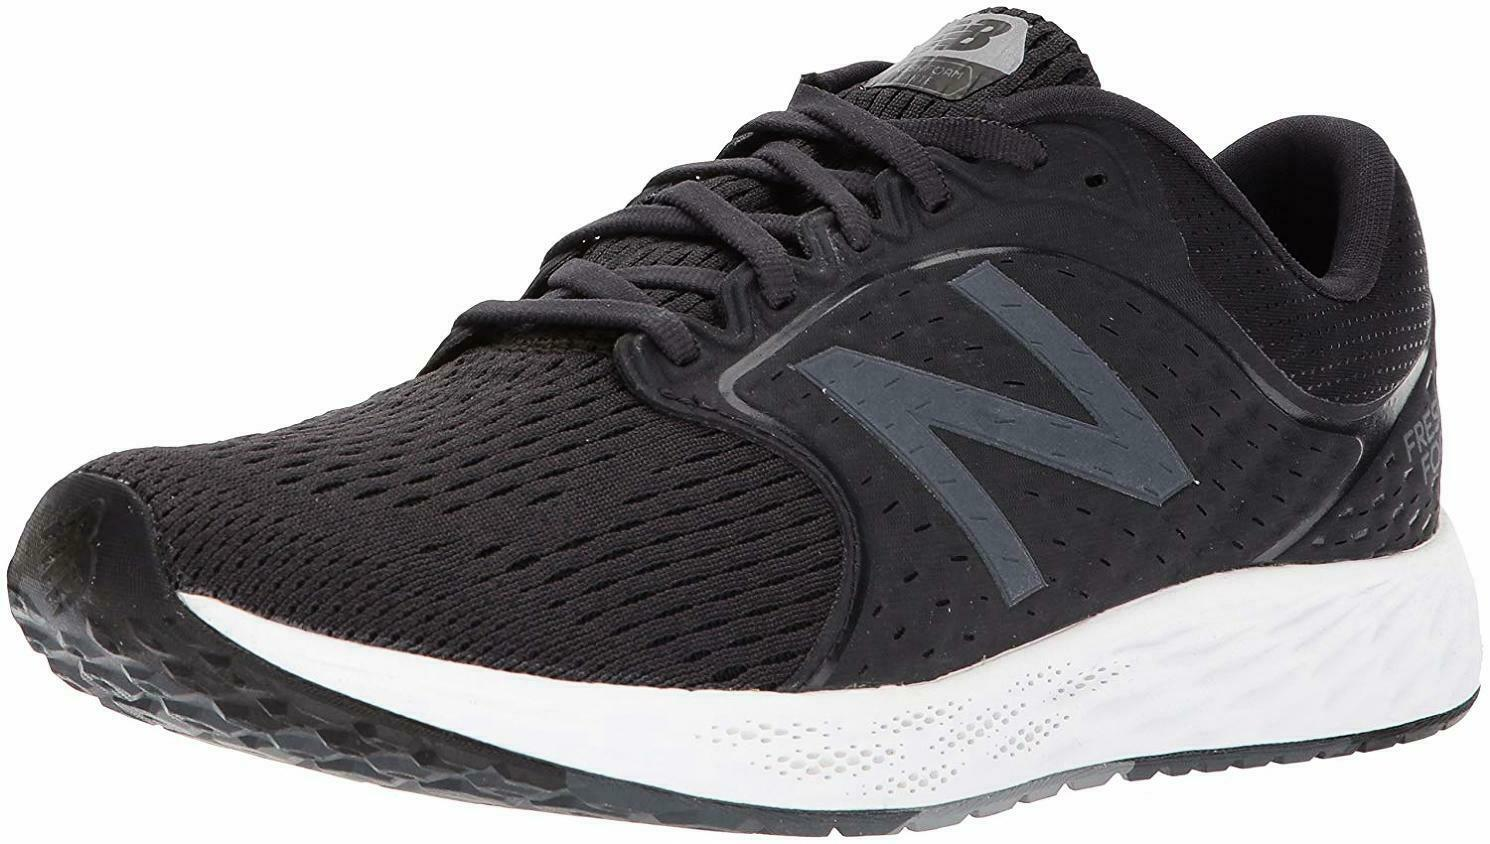 New Balance Men's Zante V4 Running shoes - Choose SZ color